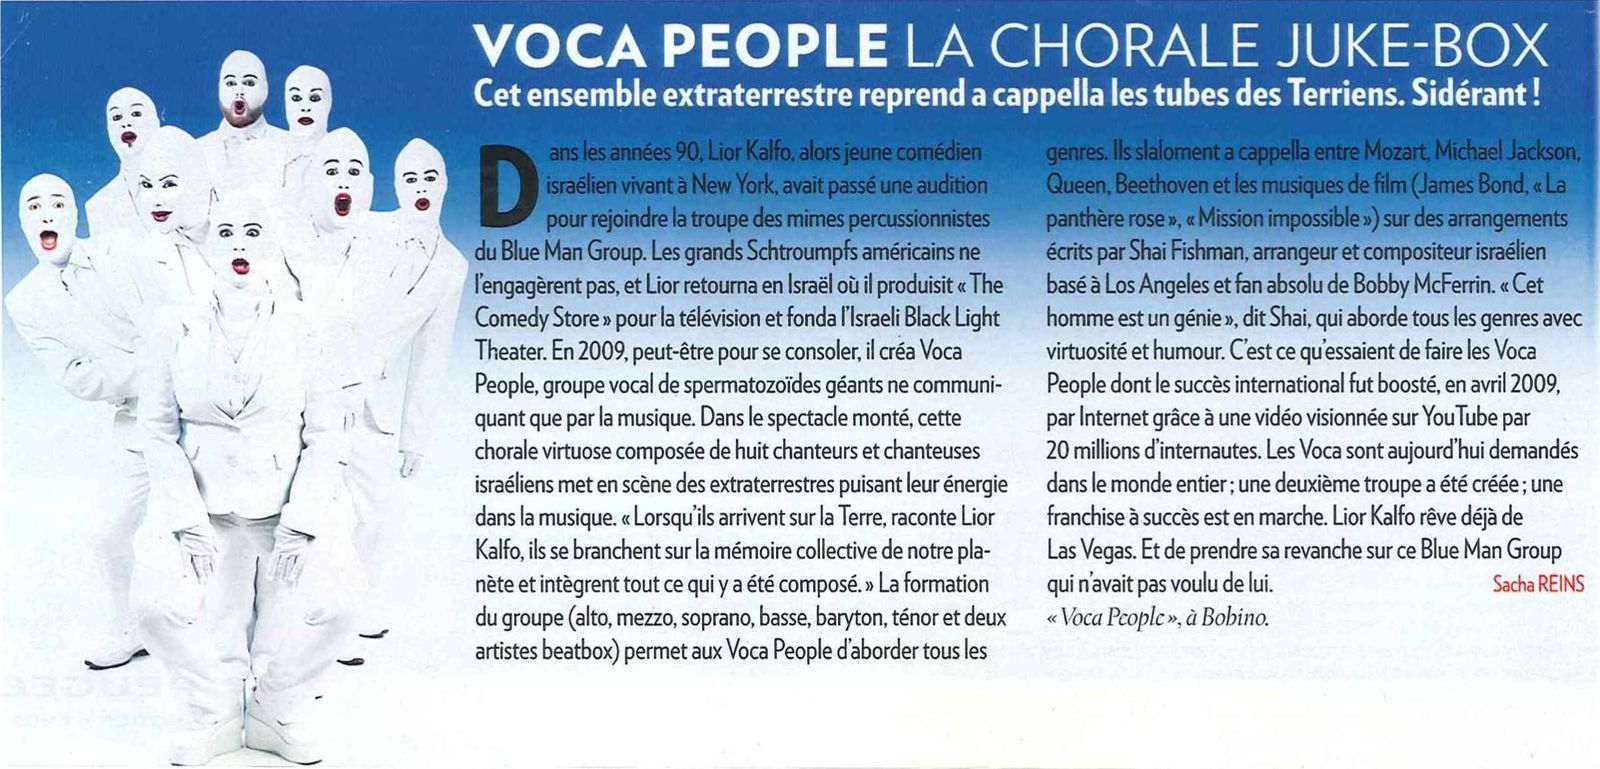 Les Voca People - Paris Match